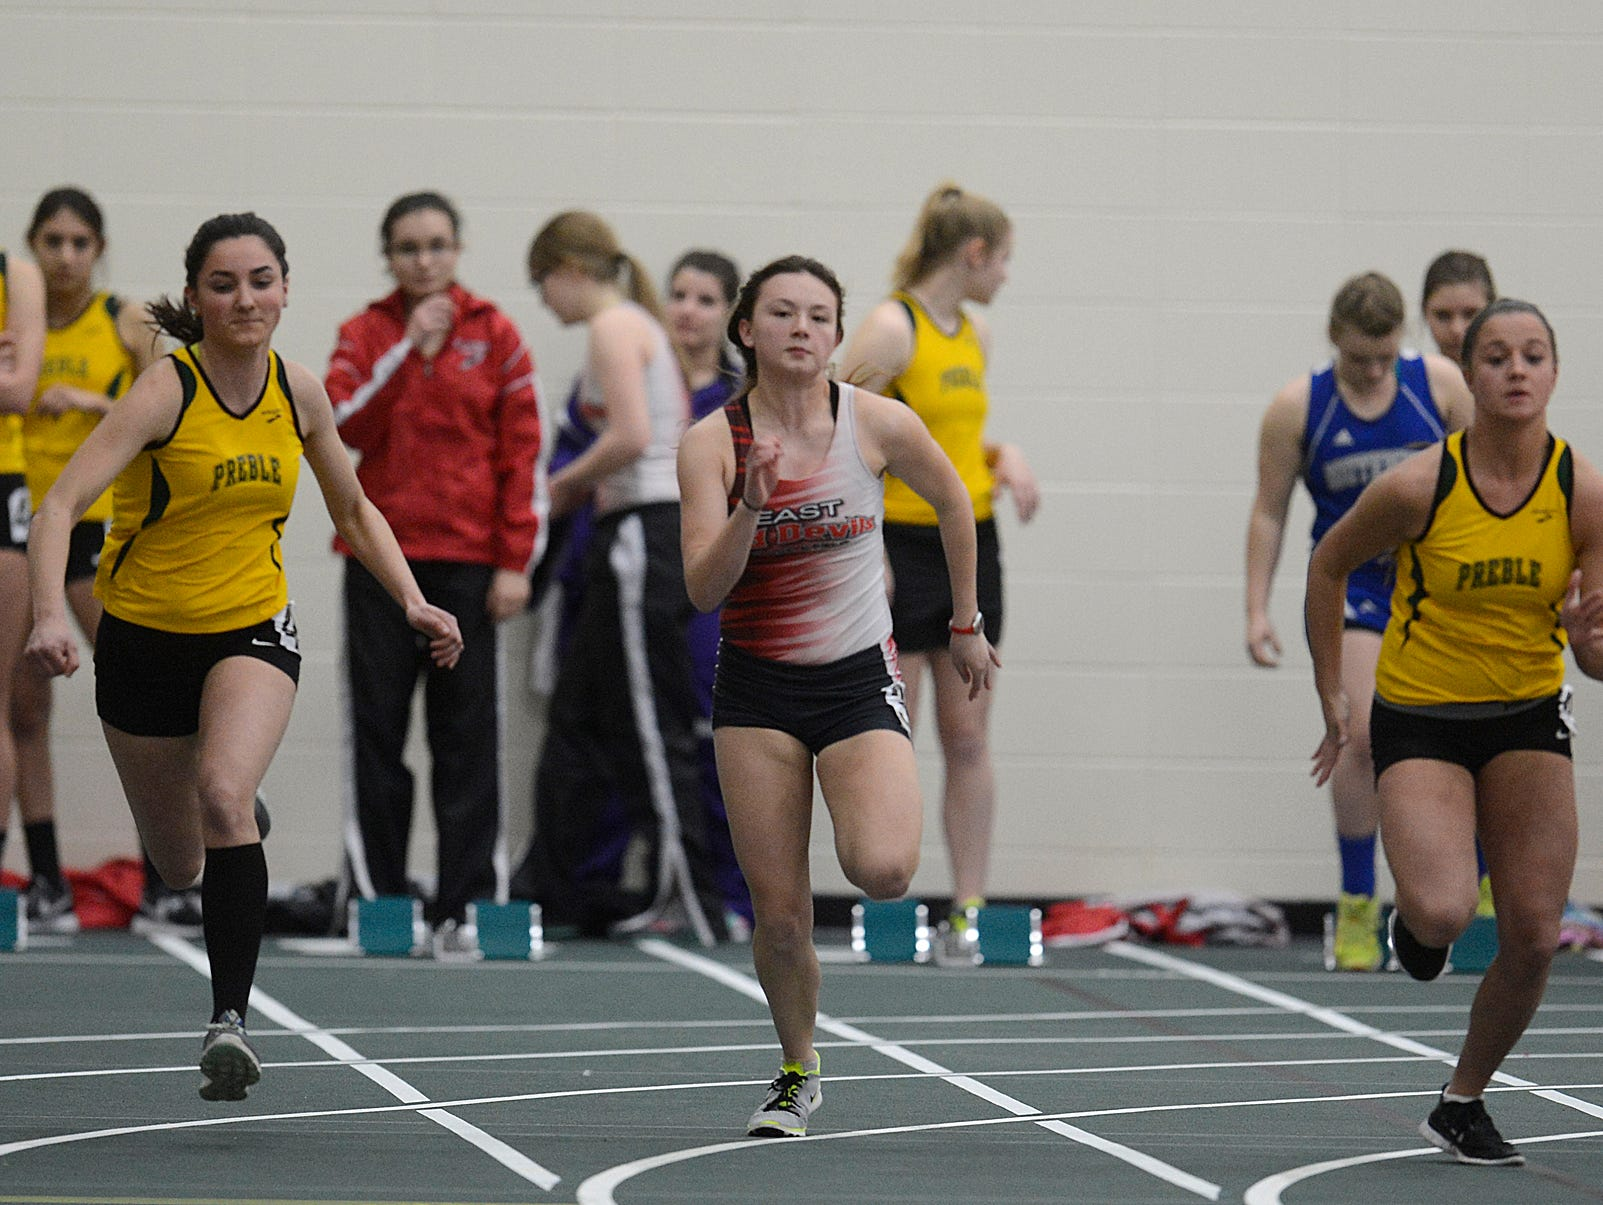 The 16th annual Preble Indoor Invitational at Green Bay Preble High School on Wednesday, March 18, 2015.